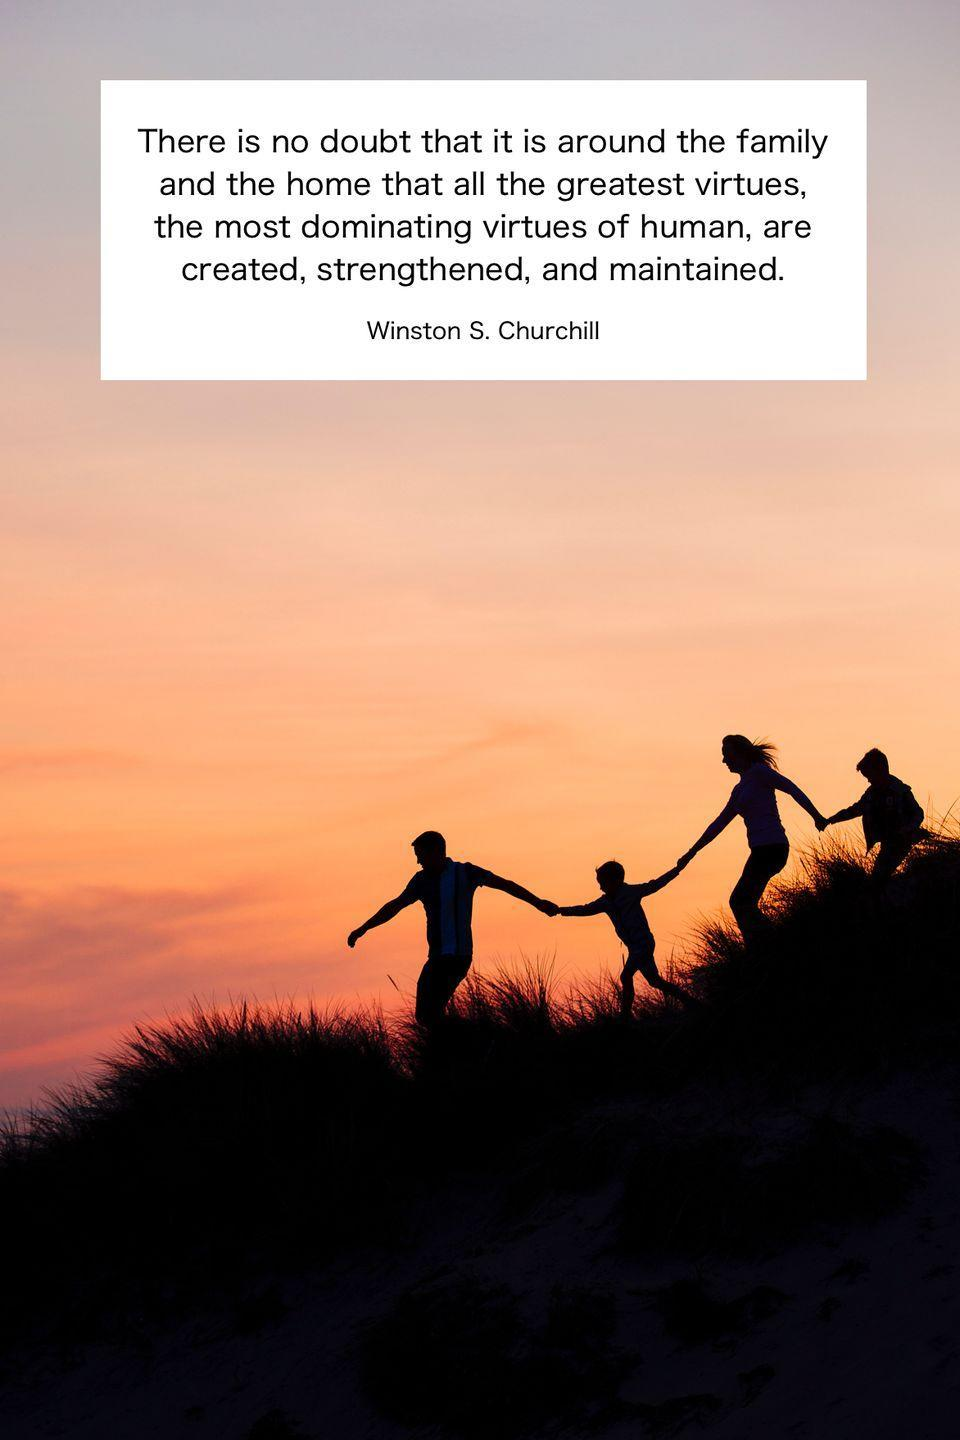 "<p>""There is no doubt that it is around the family and the home that all the greatest virtues, the most dominating virtues of human, are created, strengthened, and maintained.""</p>"